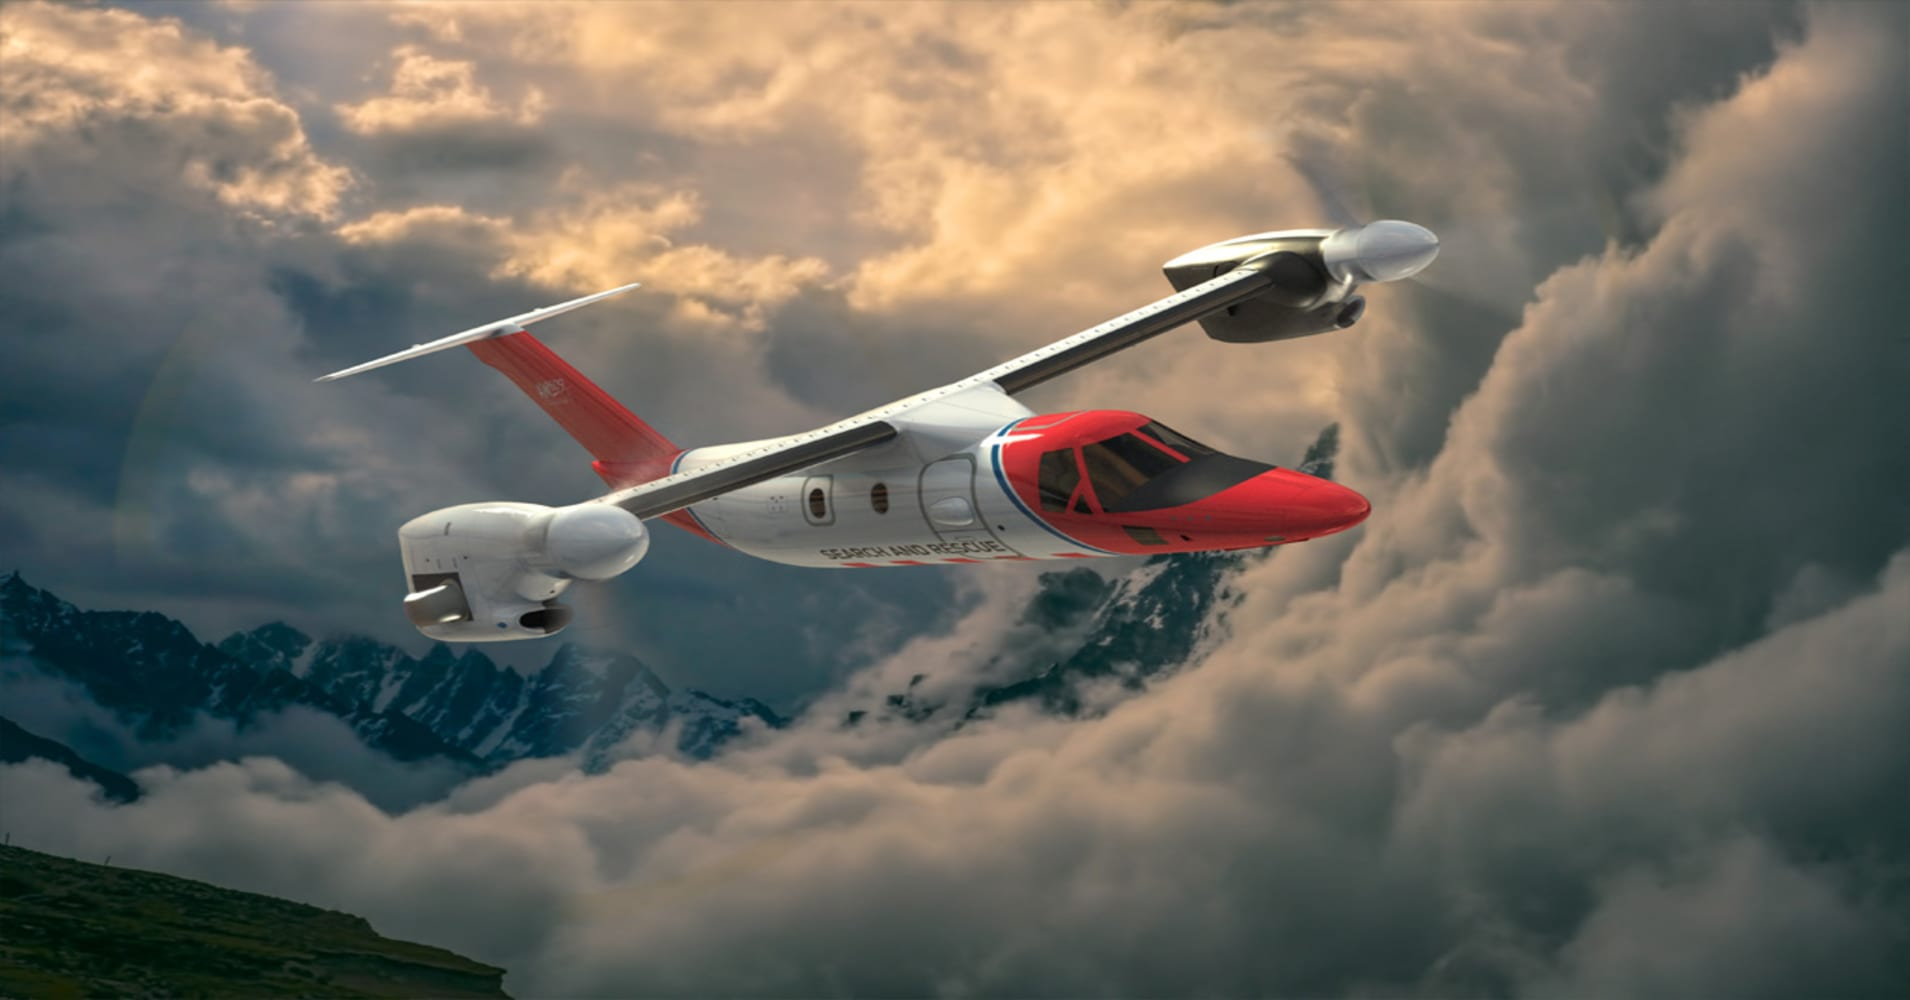 This helicopter-airplane hybrid could take flight for civilians as early as 2020—take a look